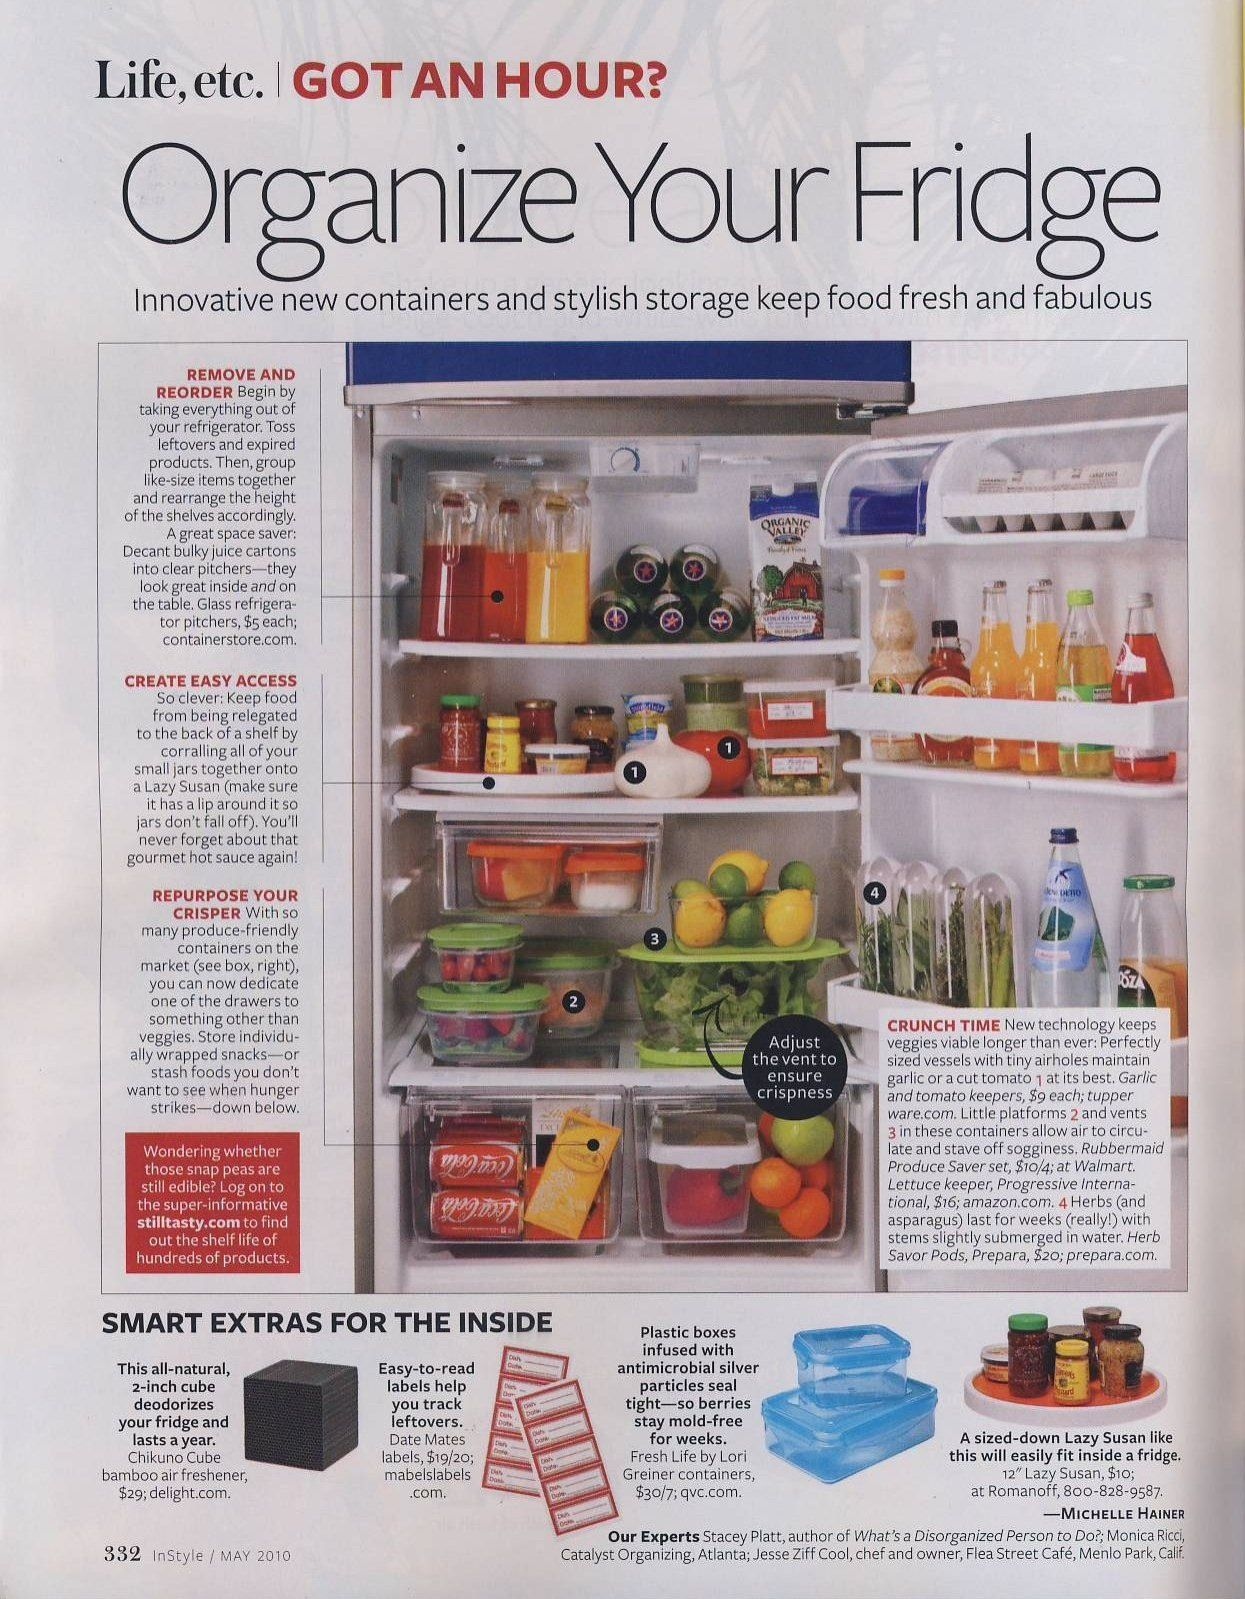 Jun 03,  · How to Organize Your Fridge. In this Article: Article Summary Separating Foods and Condiments Using Shelves and Drawers Keeping Your Fridge Organized Community Q&A 16 References. A well-organized fridge can make cooking easier. It can also help keep your food fresh and safe to eat. You should keep food in the right compartments in the fridge%(4).